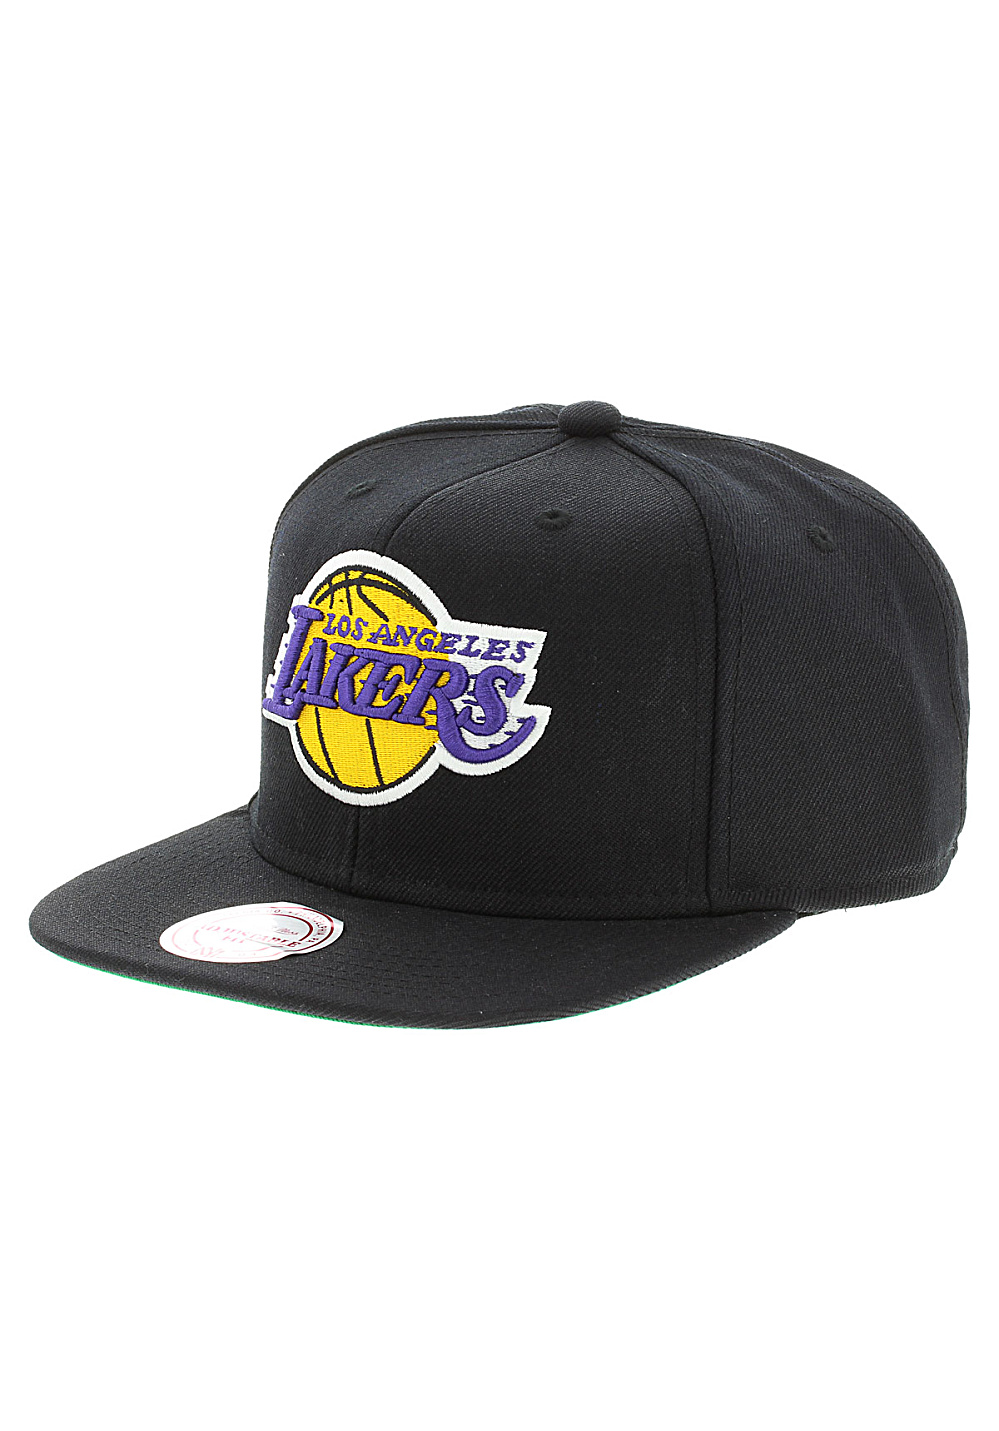 Mitchell   Ness Wool Solid LA Lakers - Snapback Cap - Black - Planet ... cf7c9dce5a5